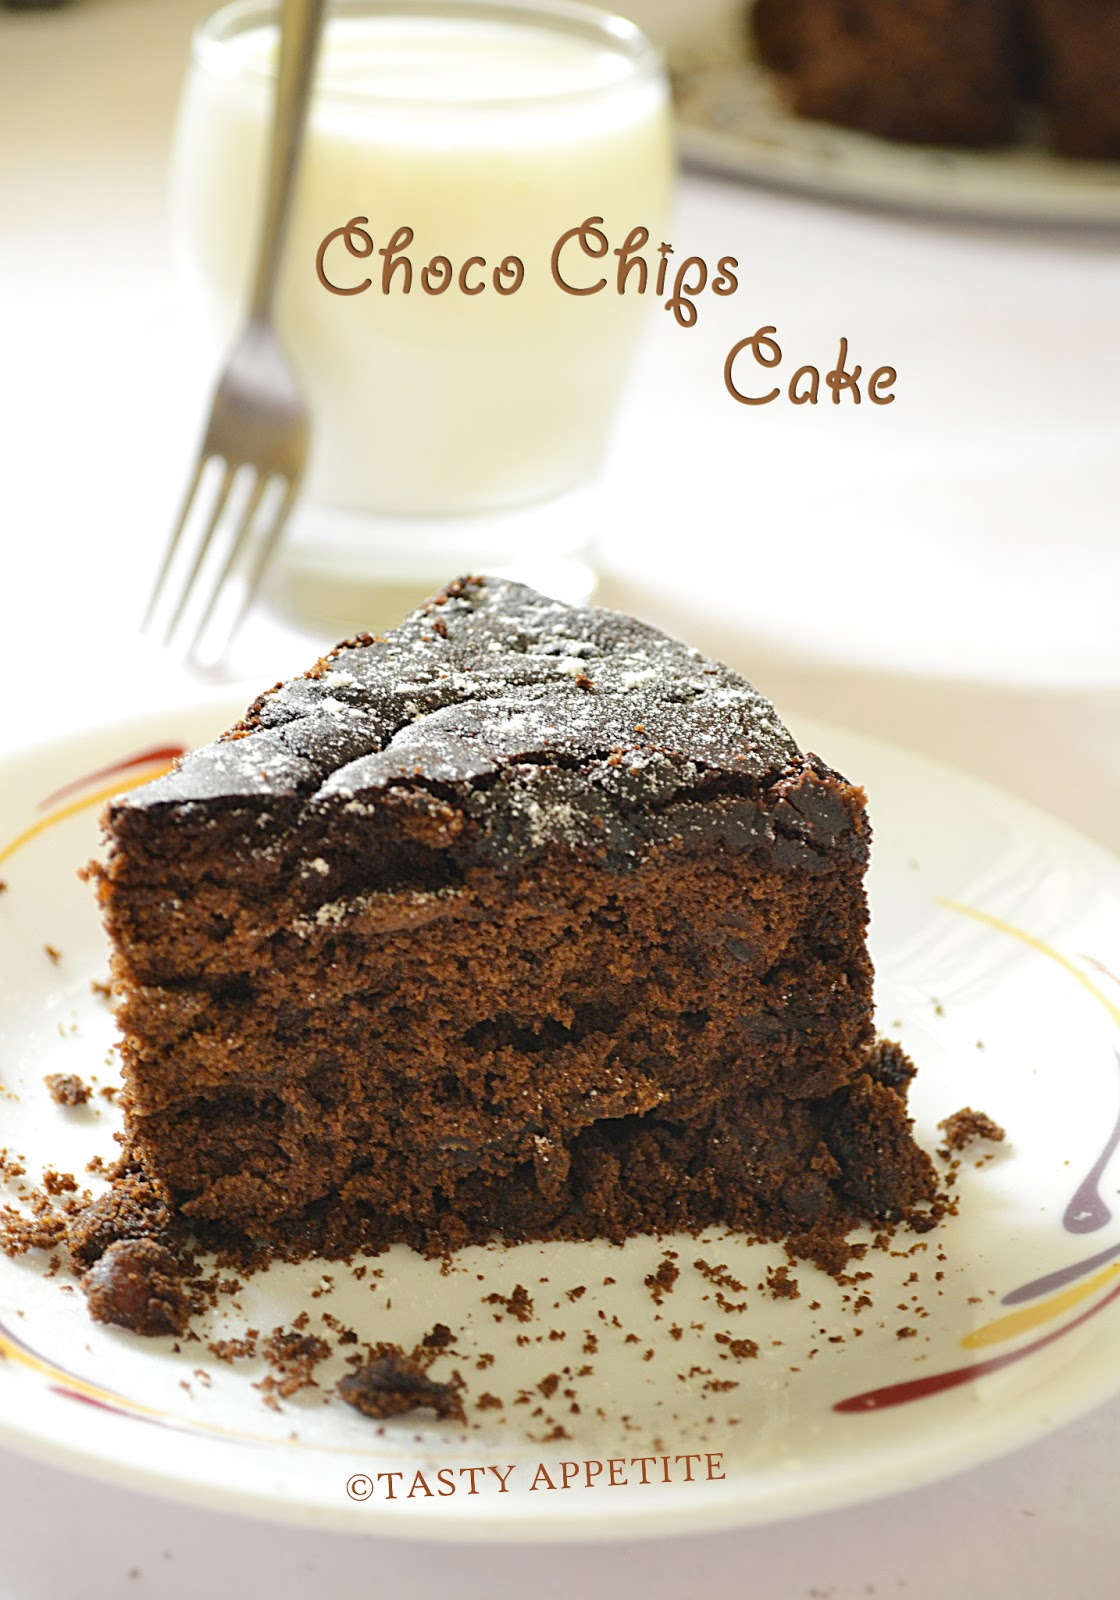 How To Make Eggless Chocolate Cake / Moist Chocolate Cake